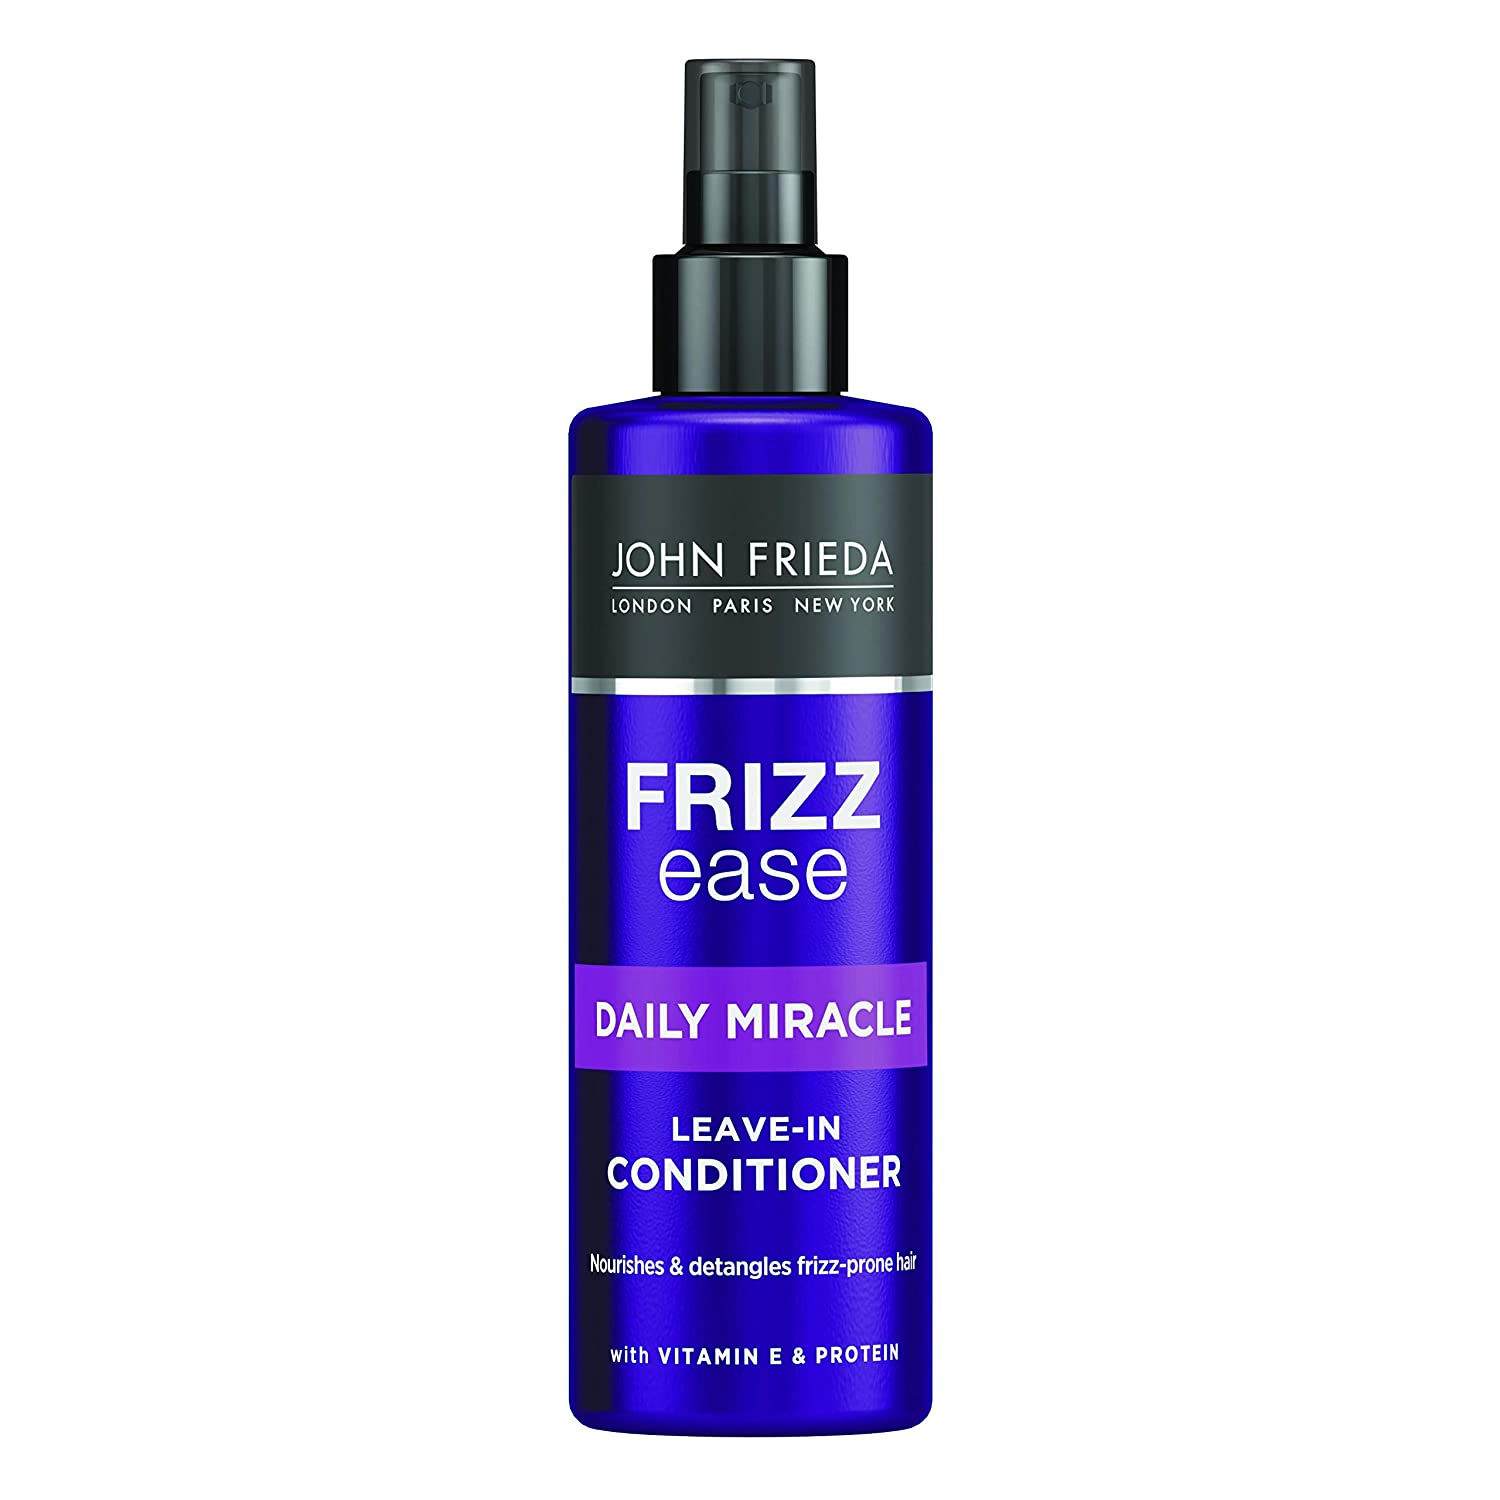 John Frieda Frizz Ease Miraculous Recovery Conditioner, 500 ml Kao UK Ltd 2238400